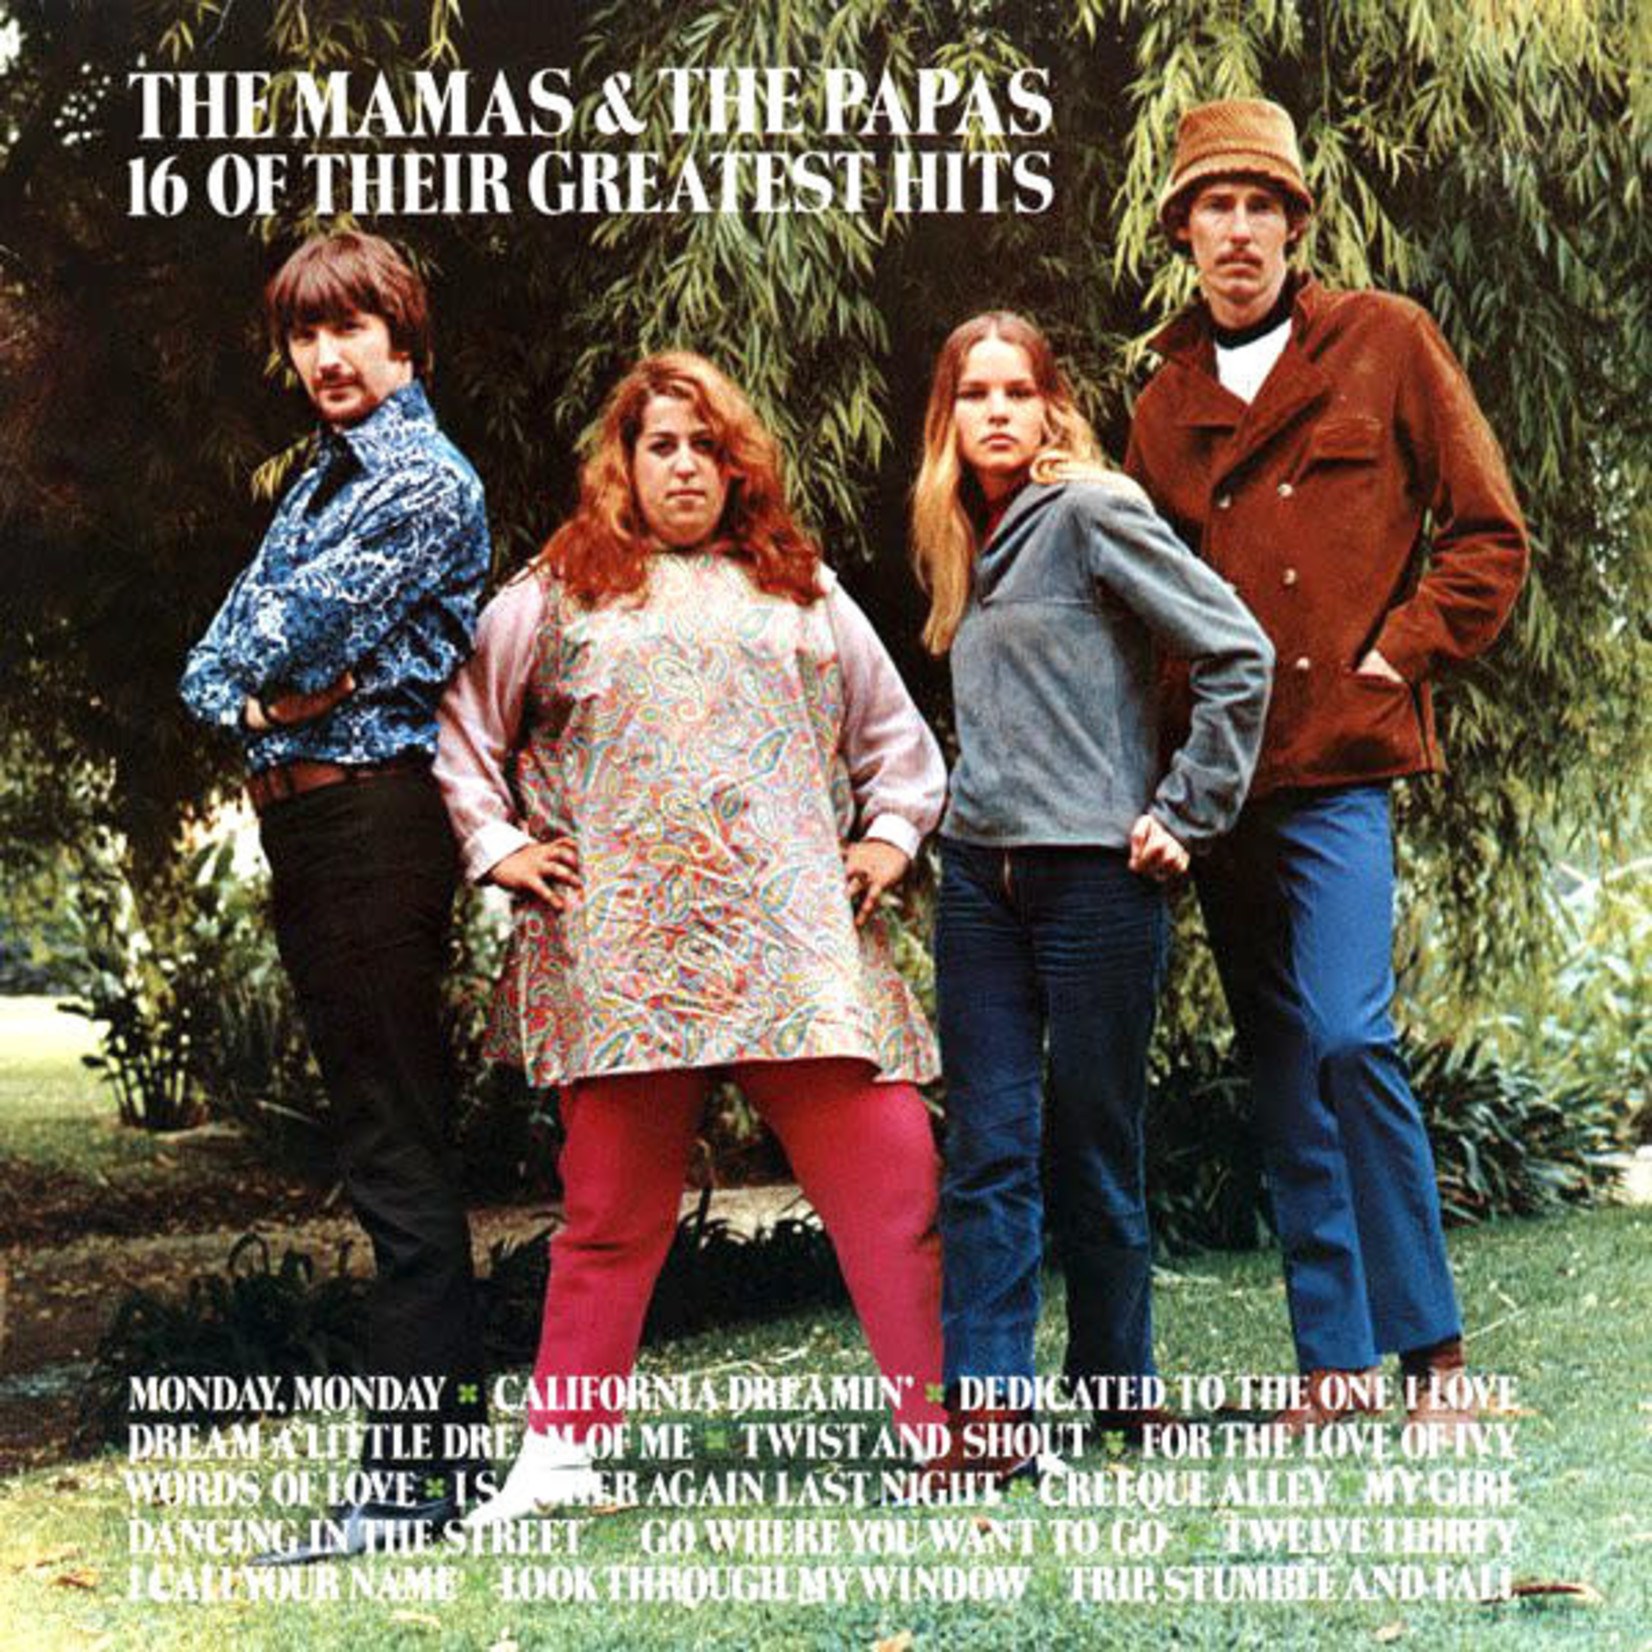 [Vintage] Mamas & Papas: 16 of Their Greatest Hits